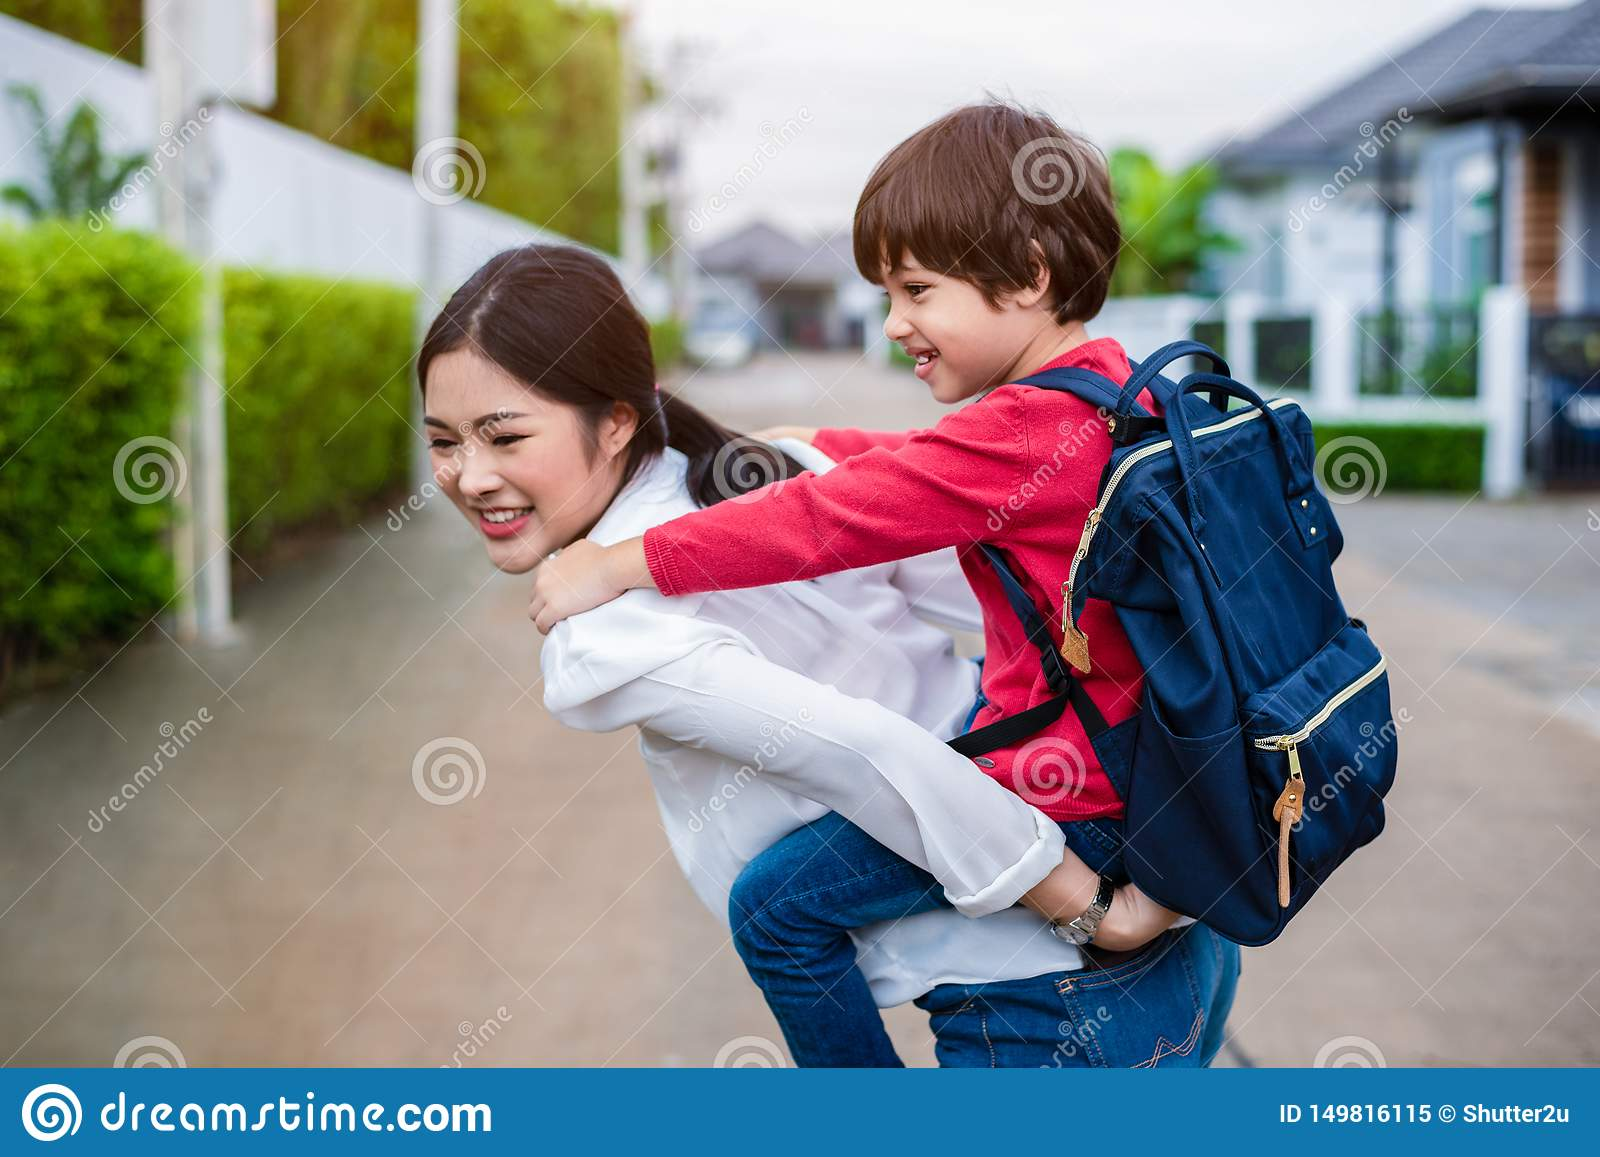 Single mom carrying and playing with her children near home with villa street background. People and Lifestyles concept. Happy